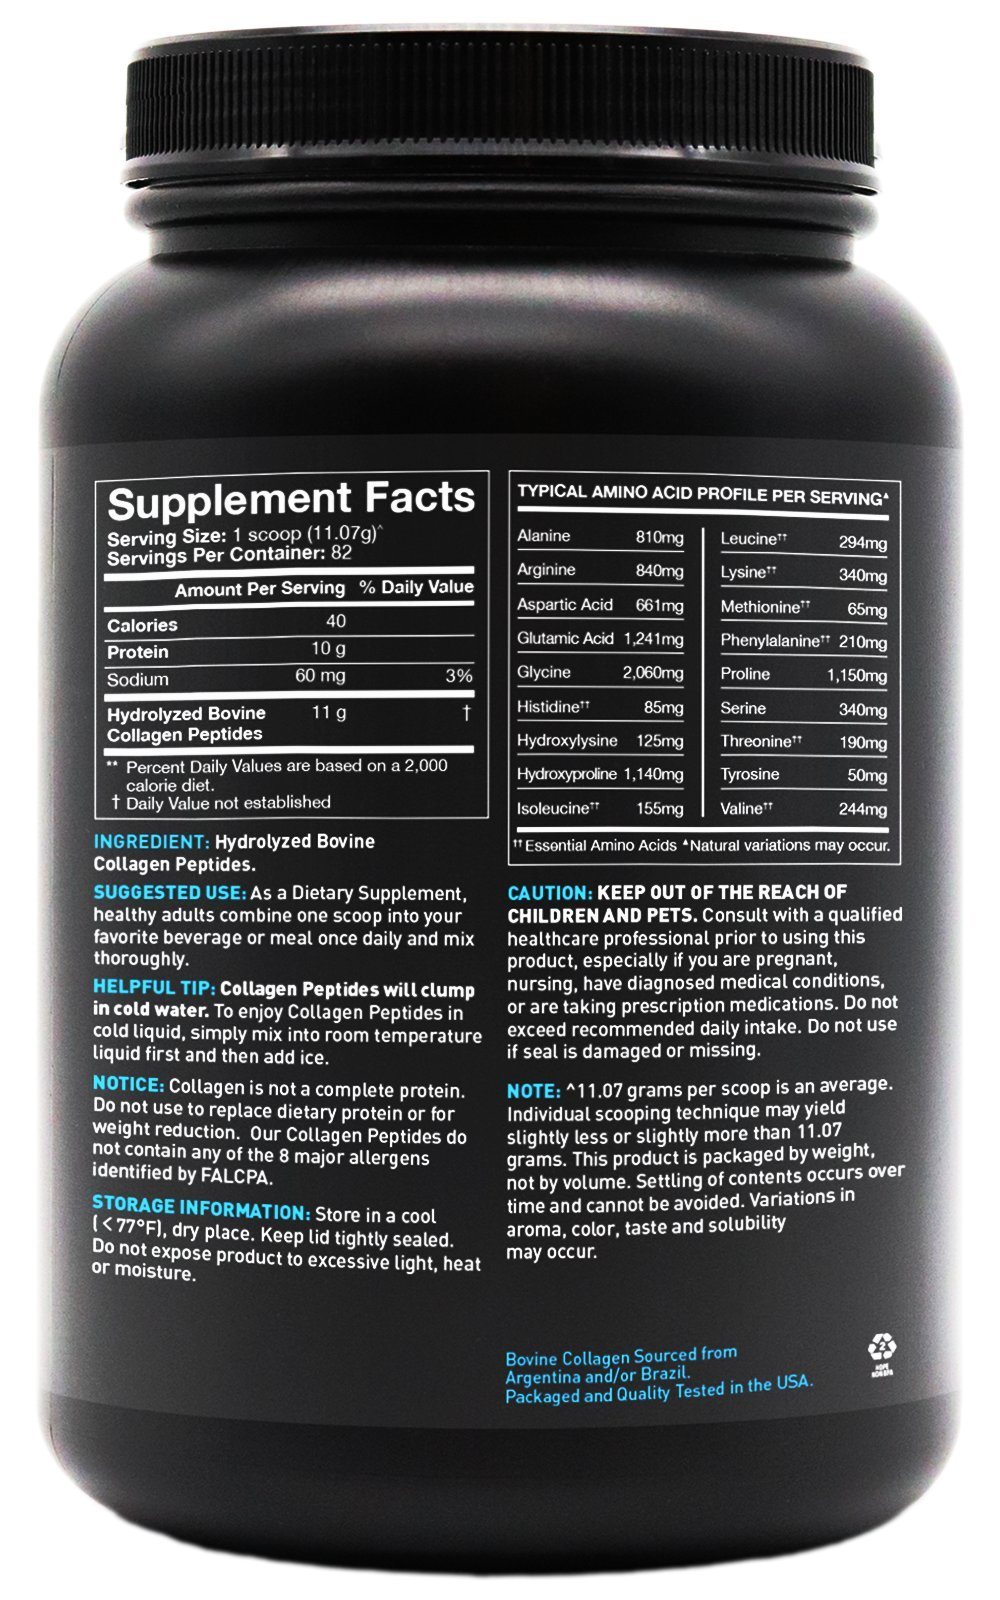 Collagen Peptides Powder 'XL' Jar 32oz | Grass-Fed, Certified Paleo Friendly, Non-GMO and Gluten Free - Unflavored by Sports Research (Image #3)